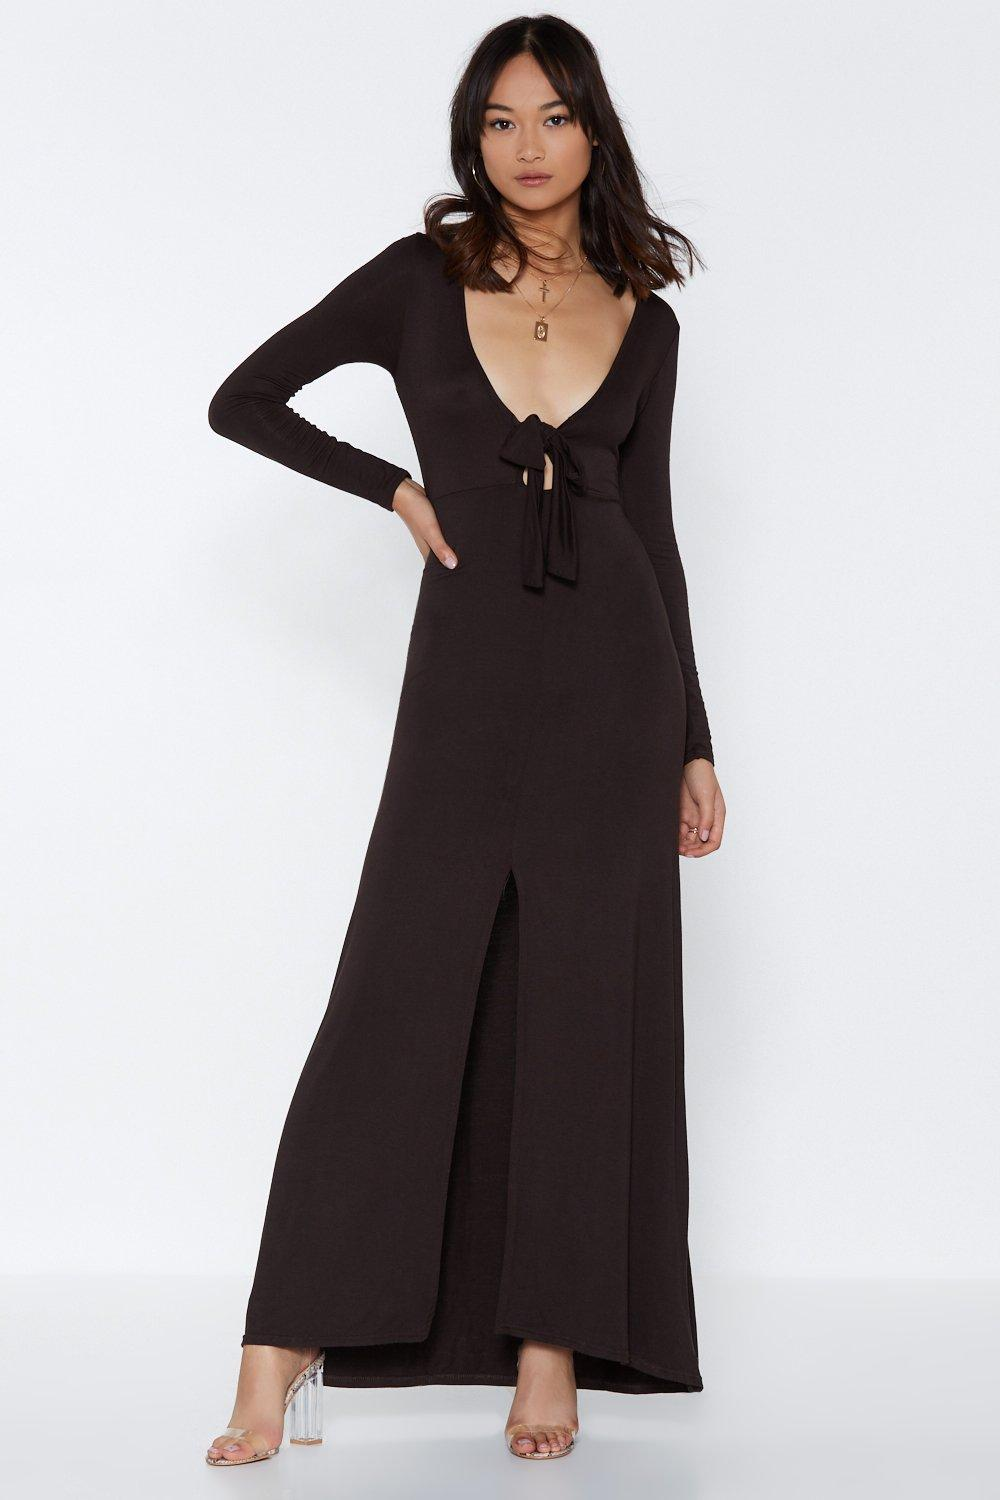 350647f38d2 Knot My Problem Maxi Dress | Shop Clothes at Nasty Gal!